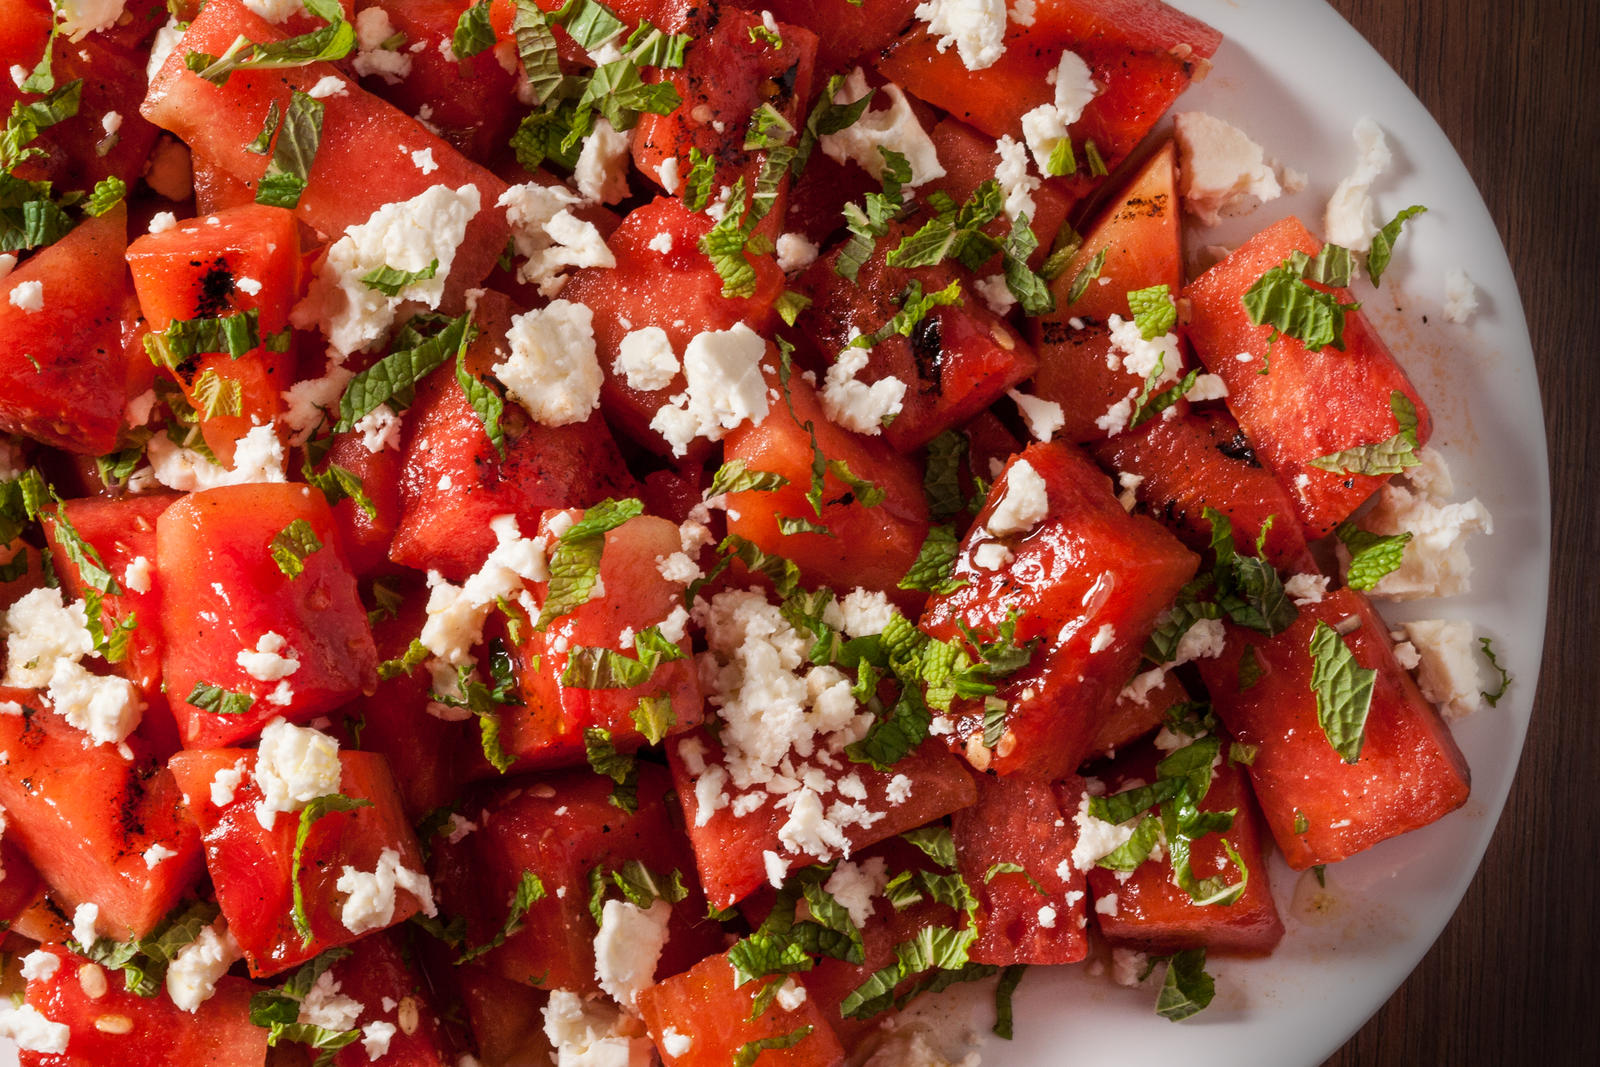 Watermelon Salad with Feta and Mint | Windmill Farms Produce